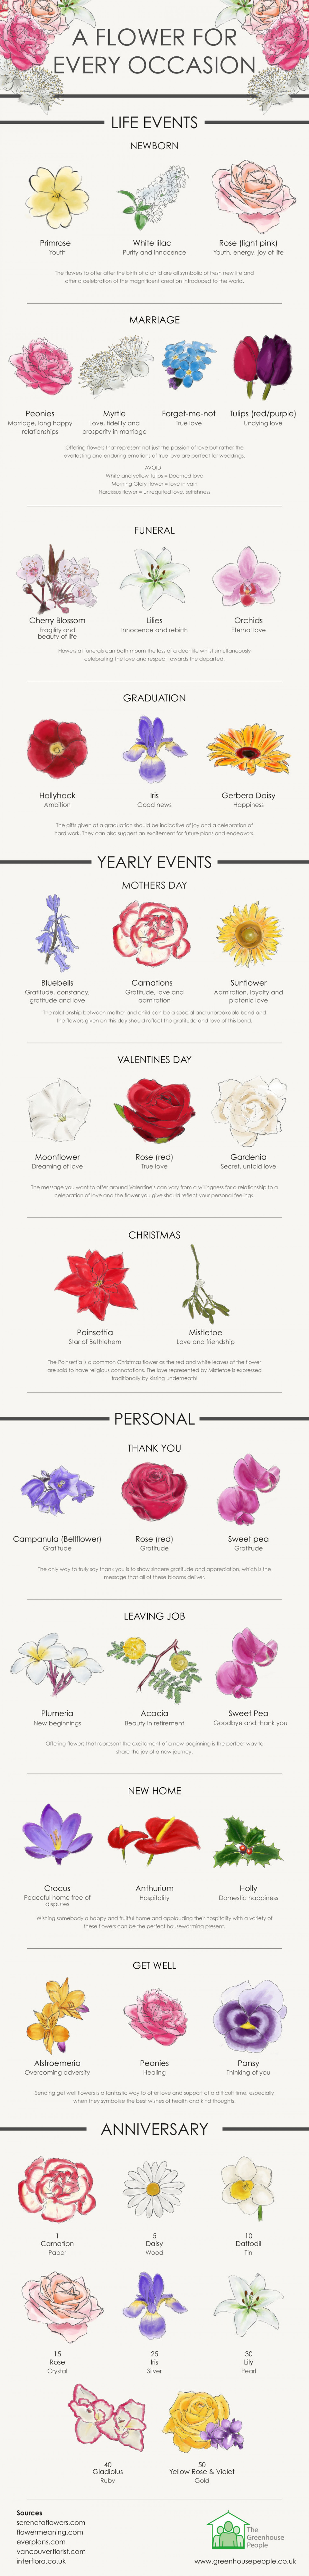 A Flower For Every Occasion Infographic